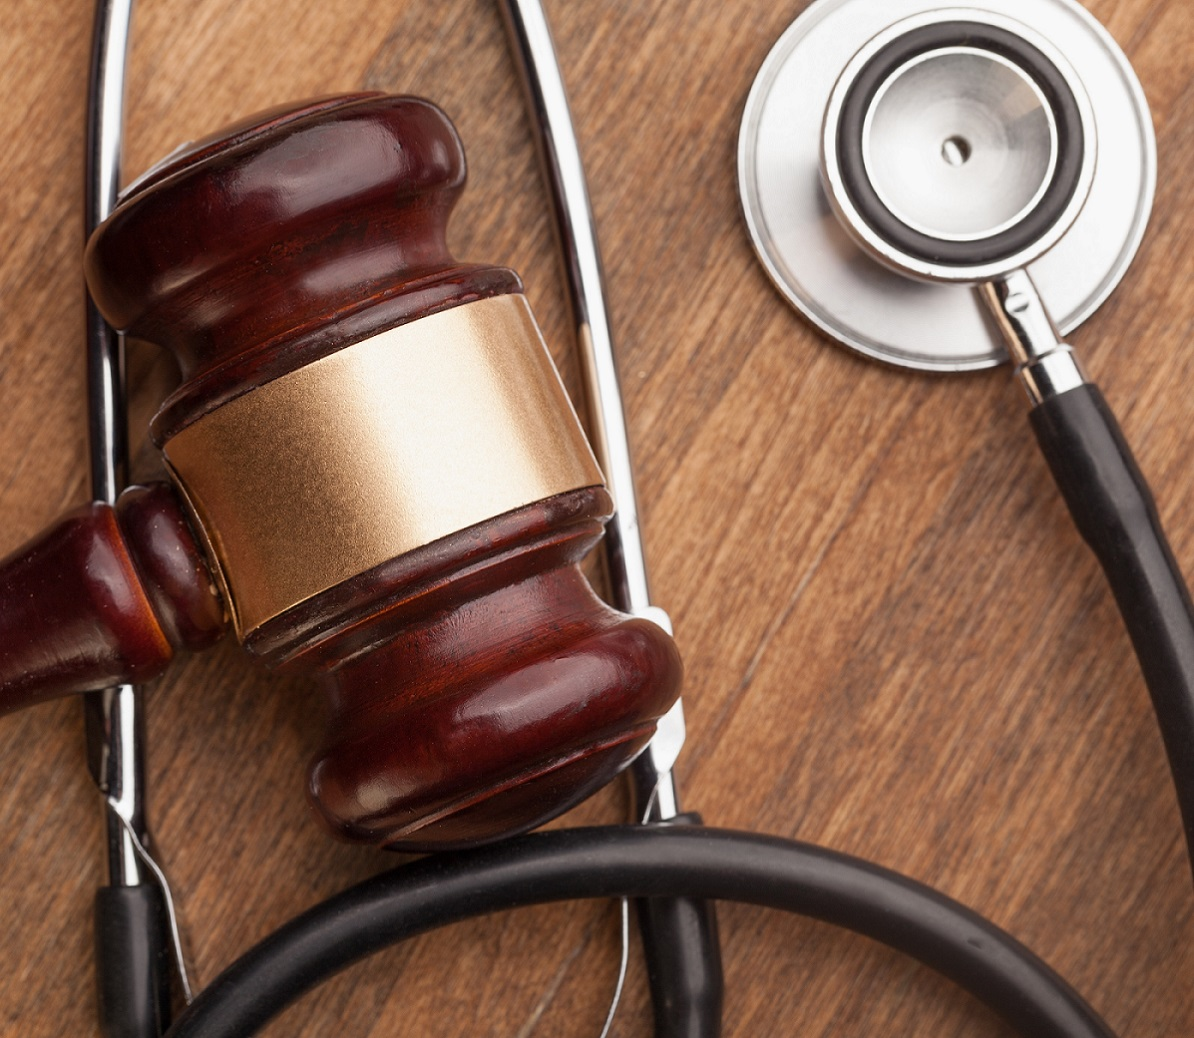 A judge's gavel with a stethoscope laying on a table